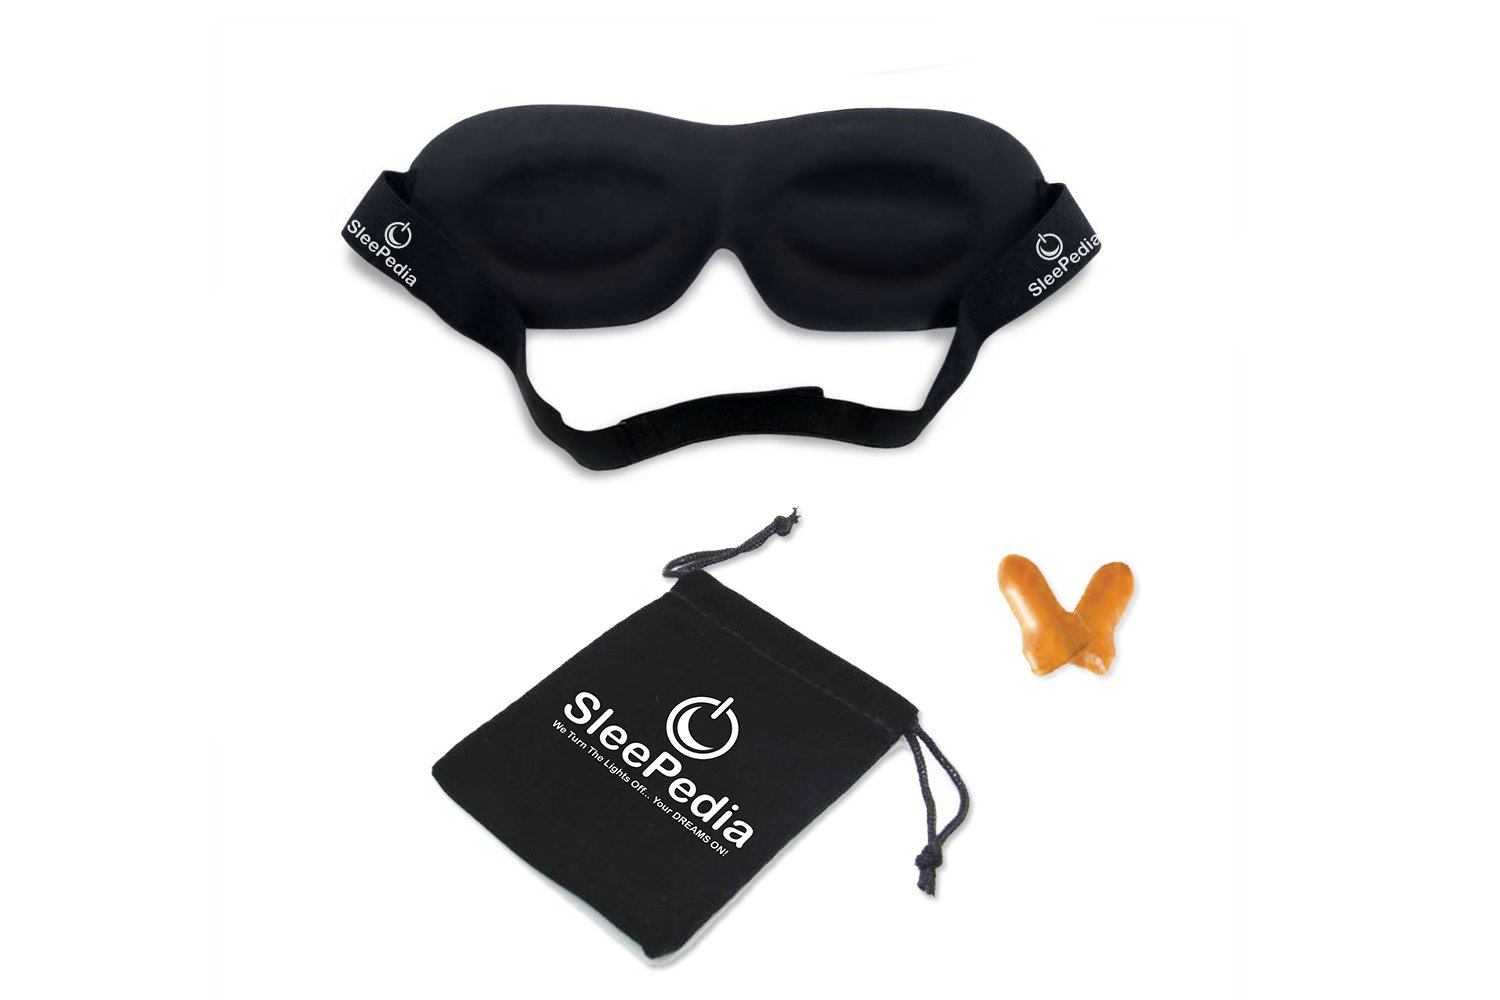 [TOP RATED] Sleep Mask with Earplugs PREMIUM Quality Contoured Eye Mask - Lightweight With Adjustable Strap - Blocks The Light Completely - Best For Travel, Insomnia or Quiet Night Sleep by SleePedia (Image #6)